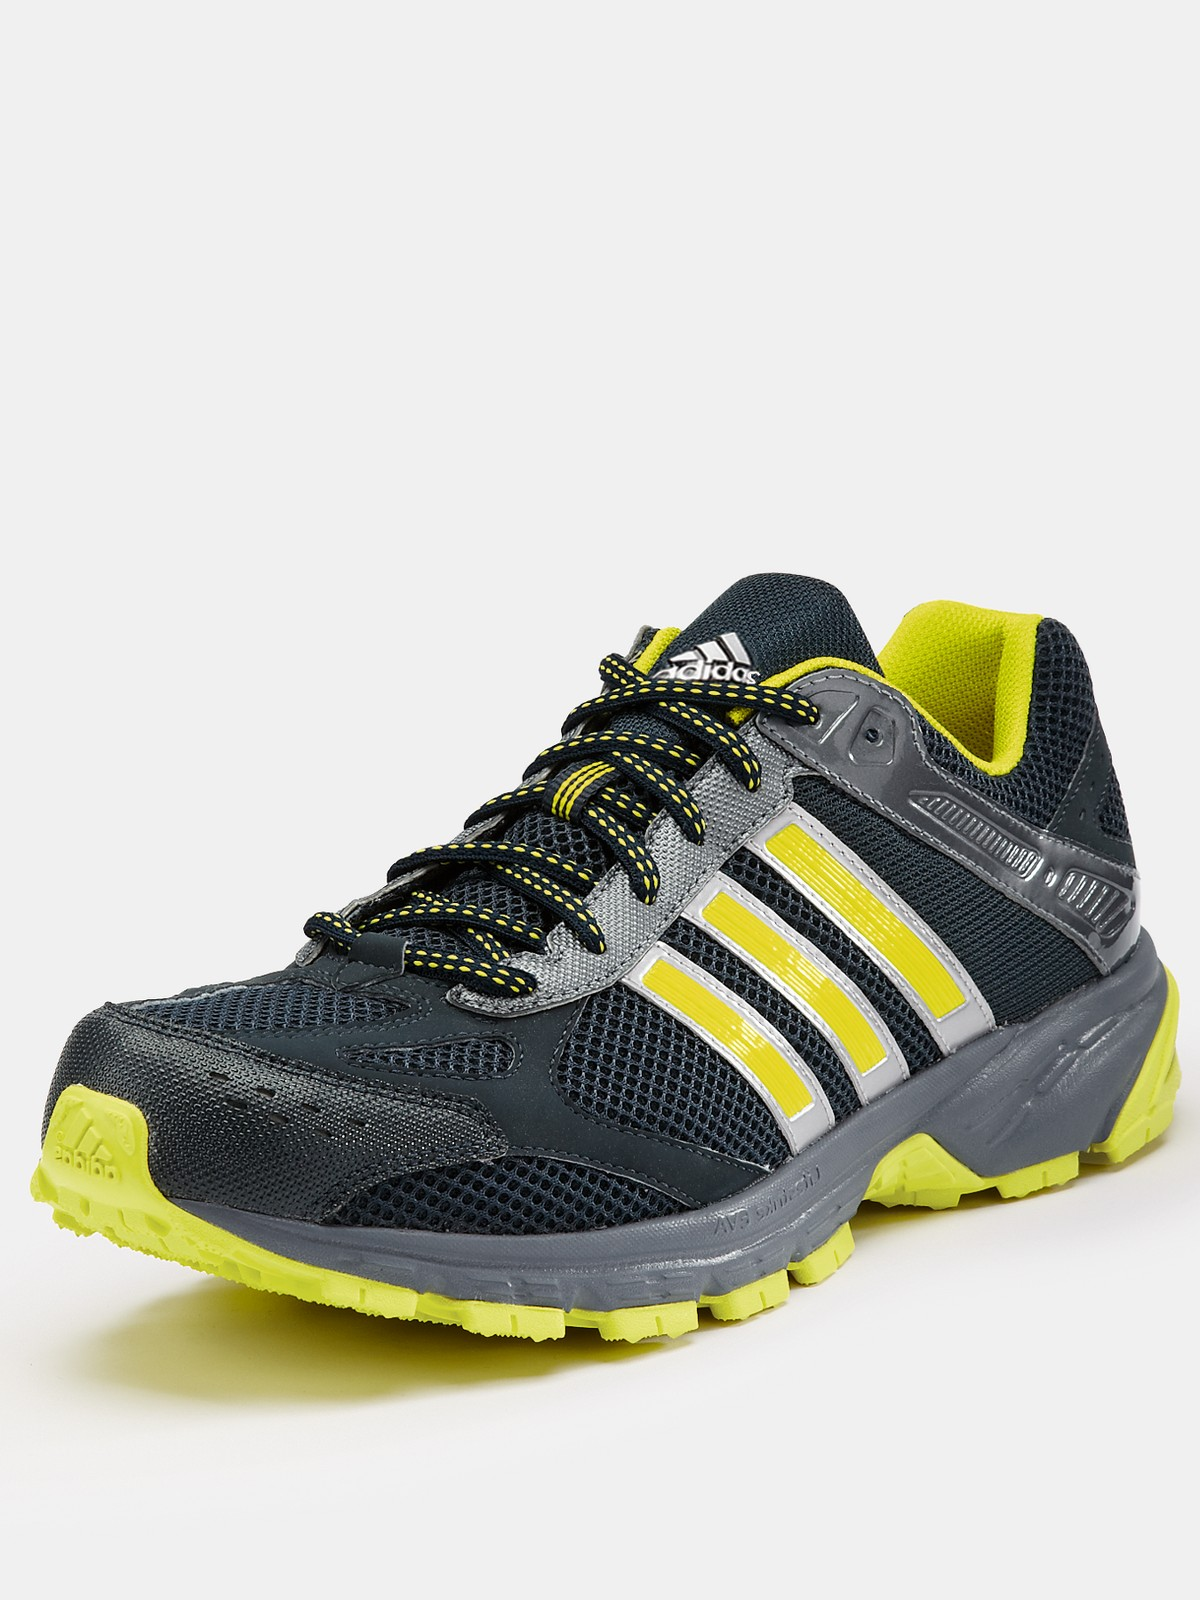 Adidas men's running shoes like the UltraBOOST and AlphaBounce deliver plush cushioning and modern style for performance and good looks no matter what your day entails. Other adidas running shoes for men like the PureBOOST offer breathability and coveted BOOST cushioning with every step.